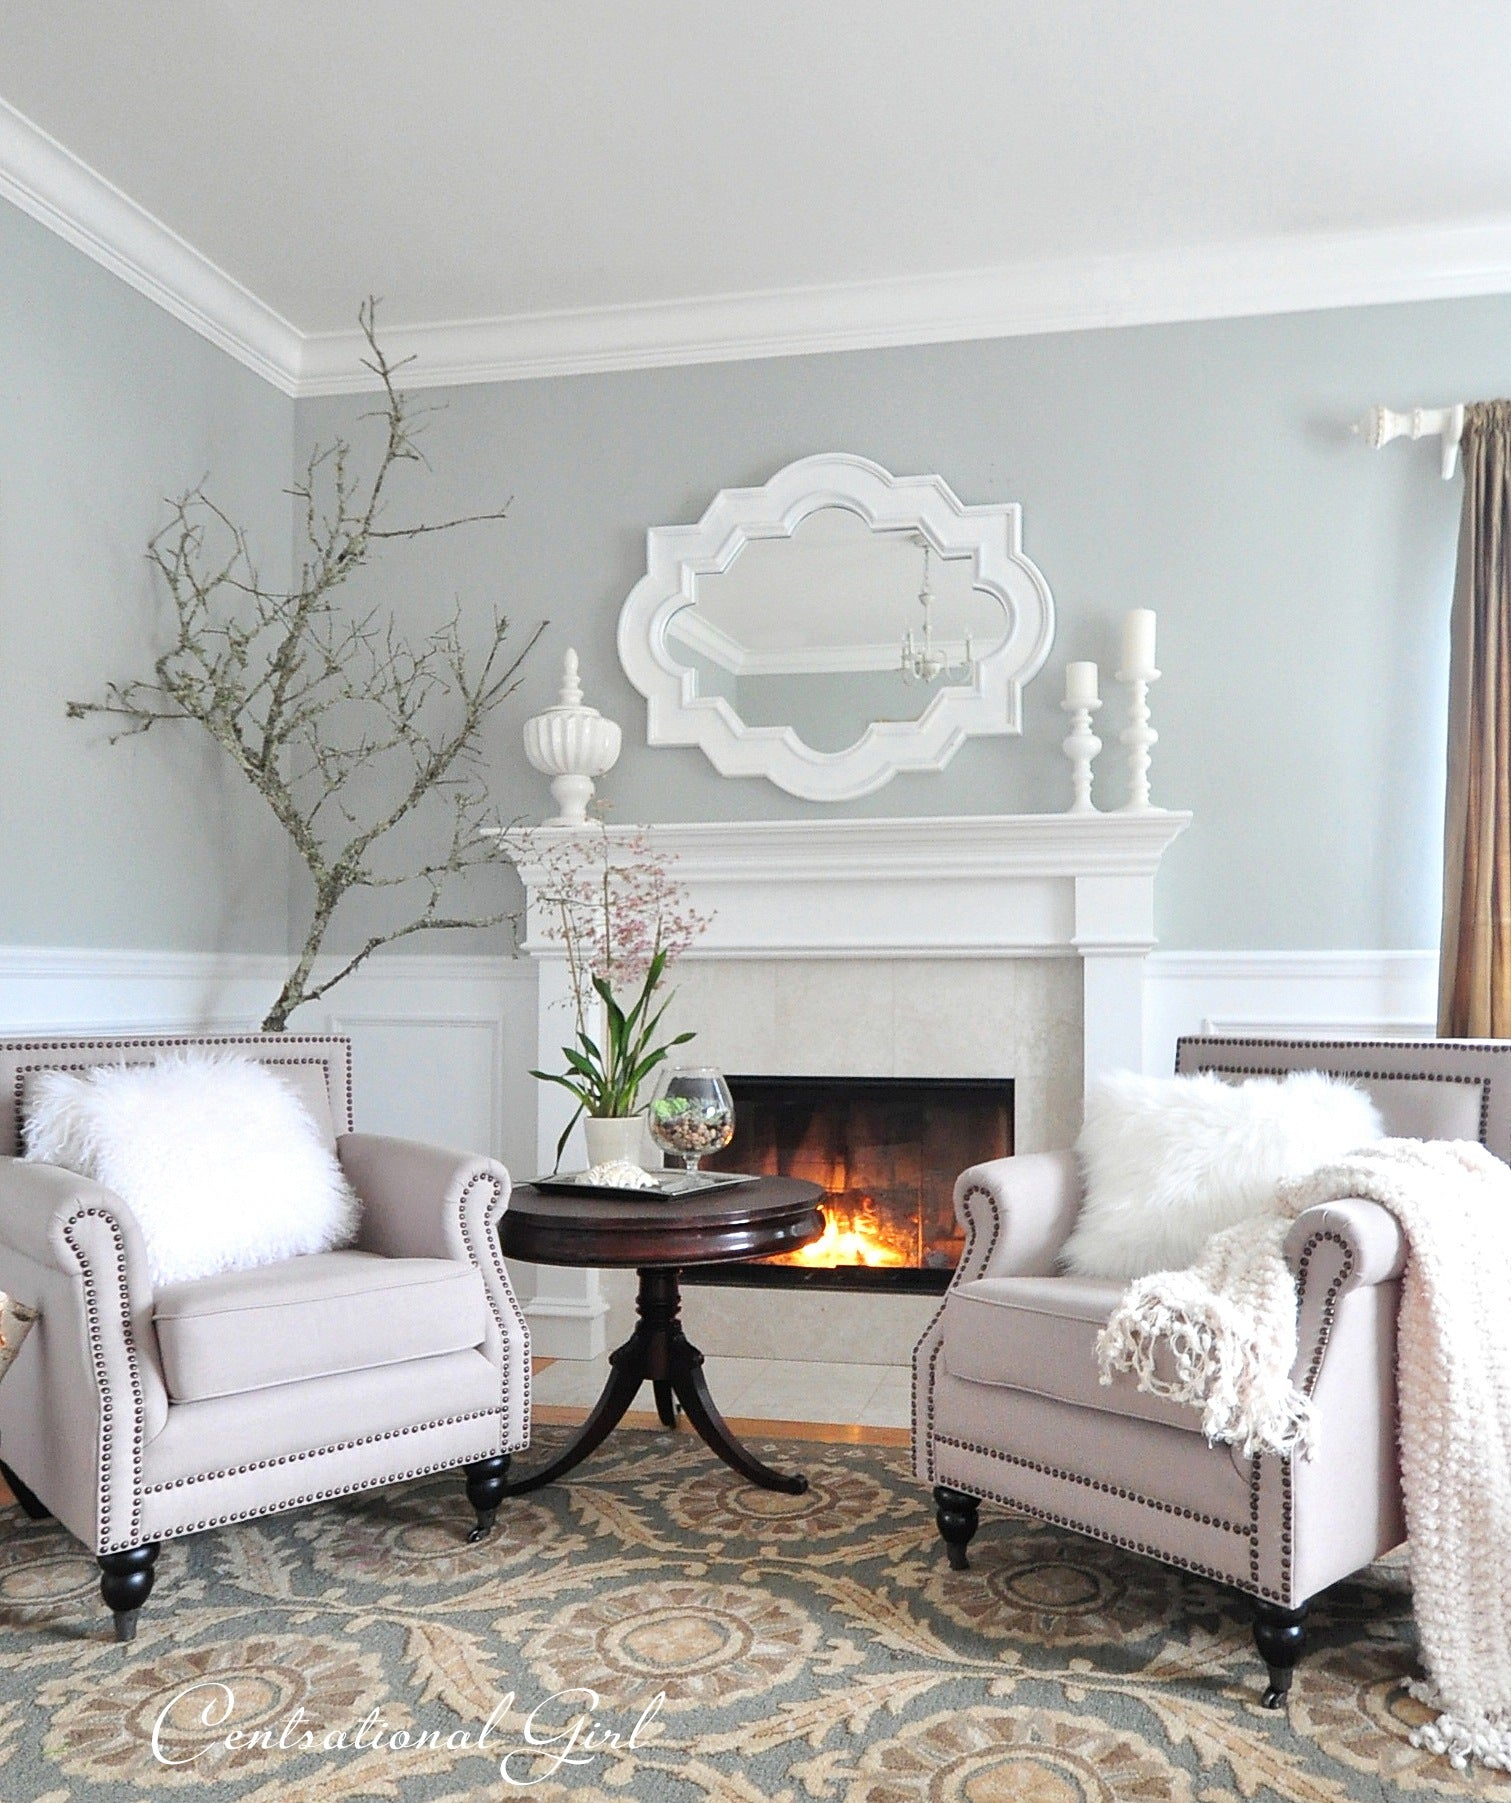 Light blue and white living room, with beige armchairs either side of a white fireplace